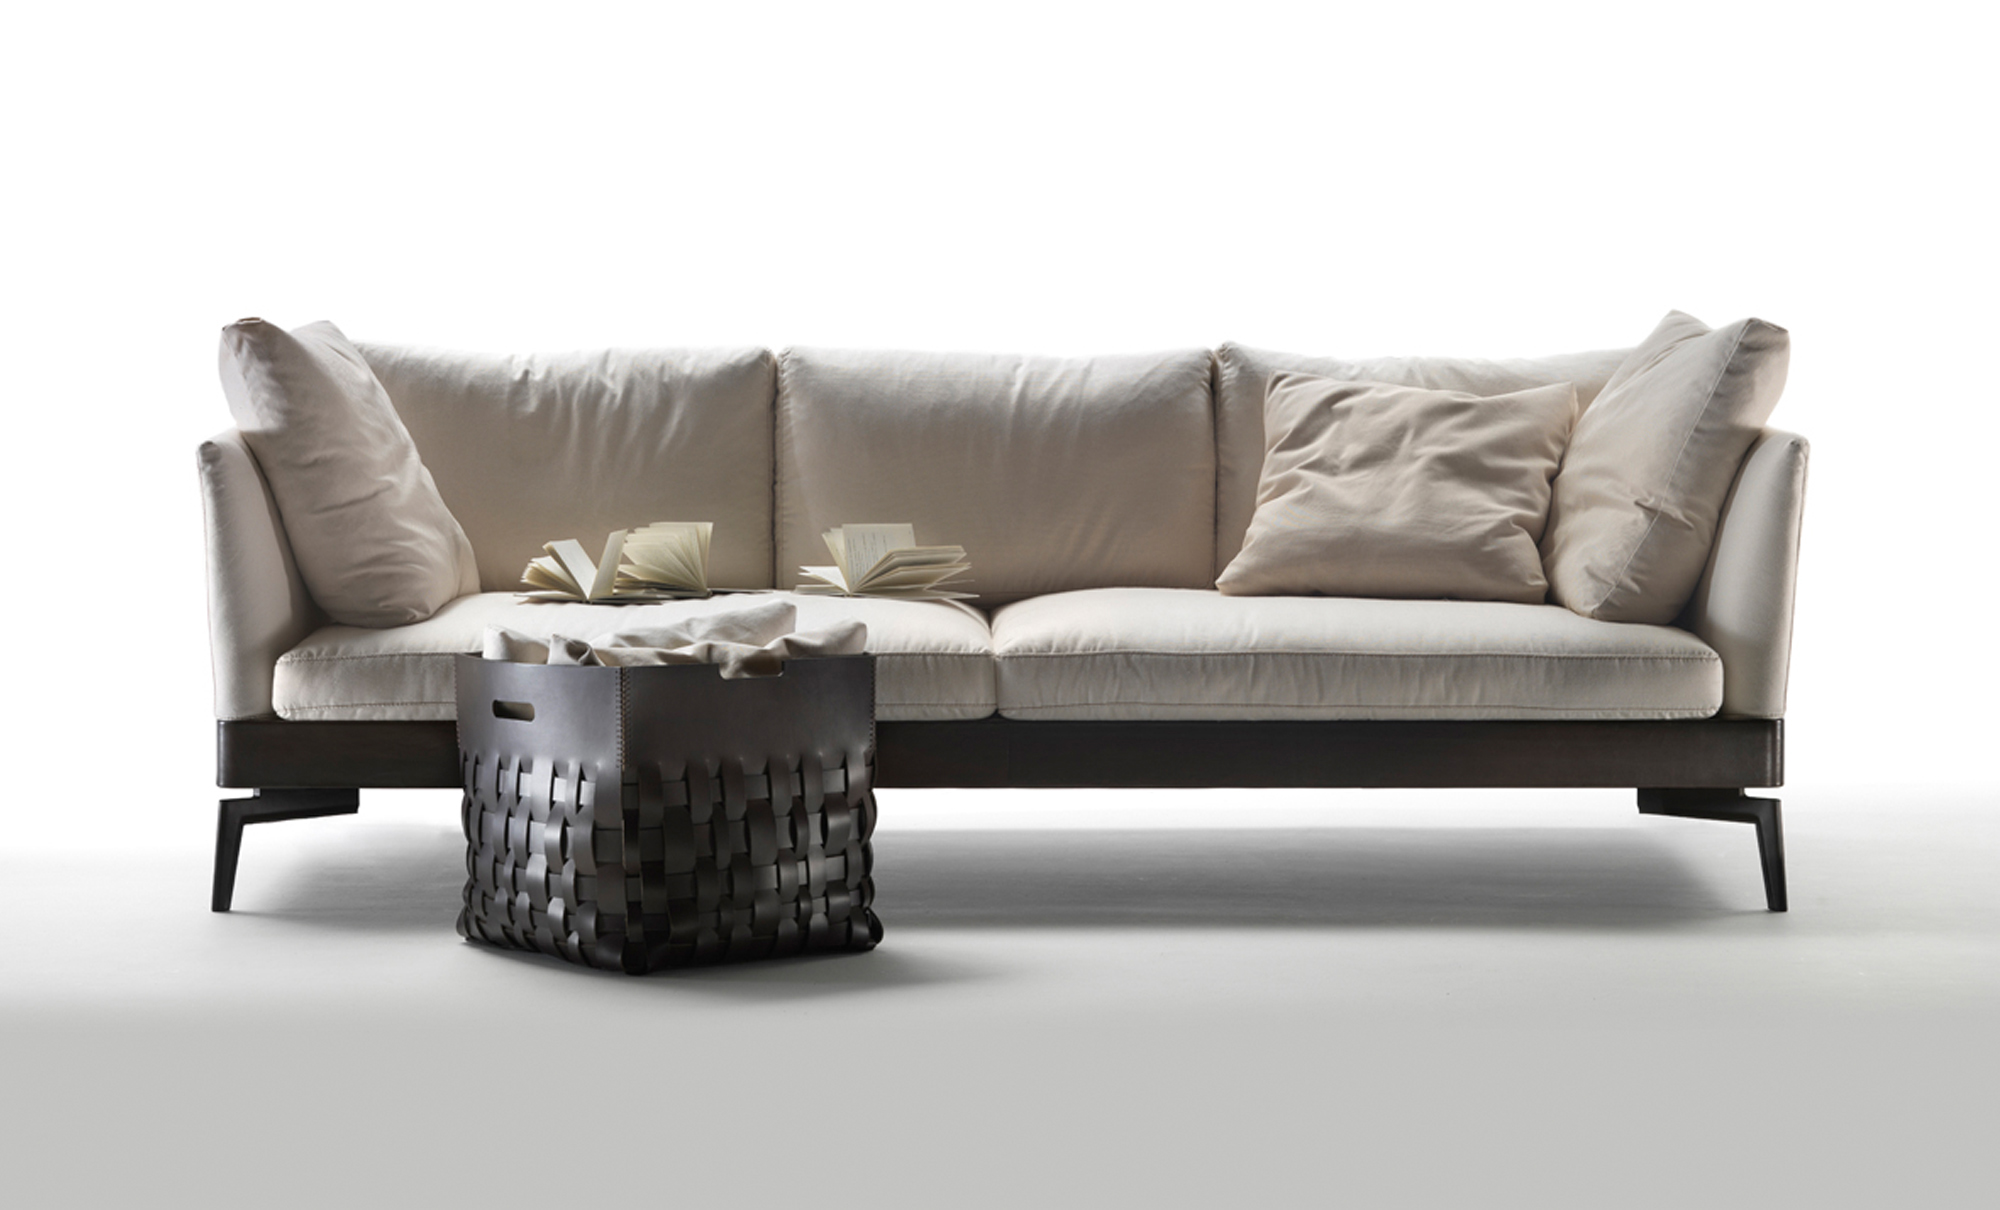 Designer Sofas and Couches Sydney & Melbourne Fanuli Furniture